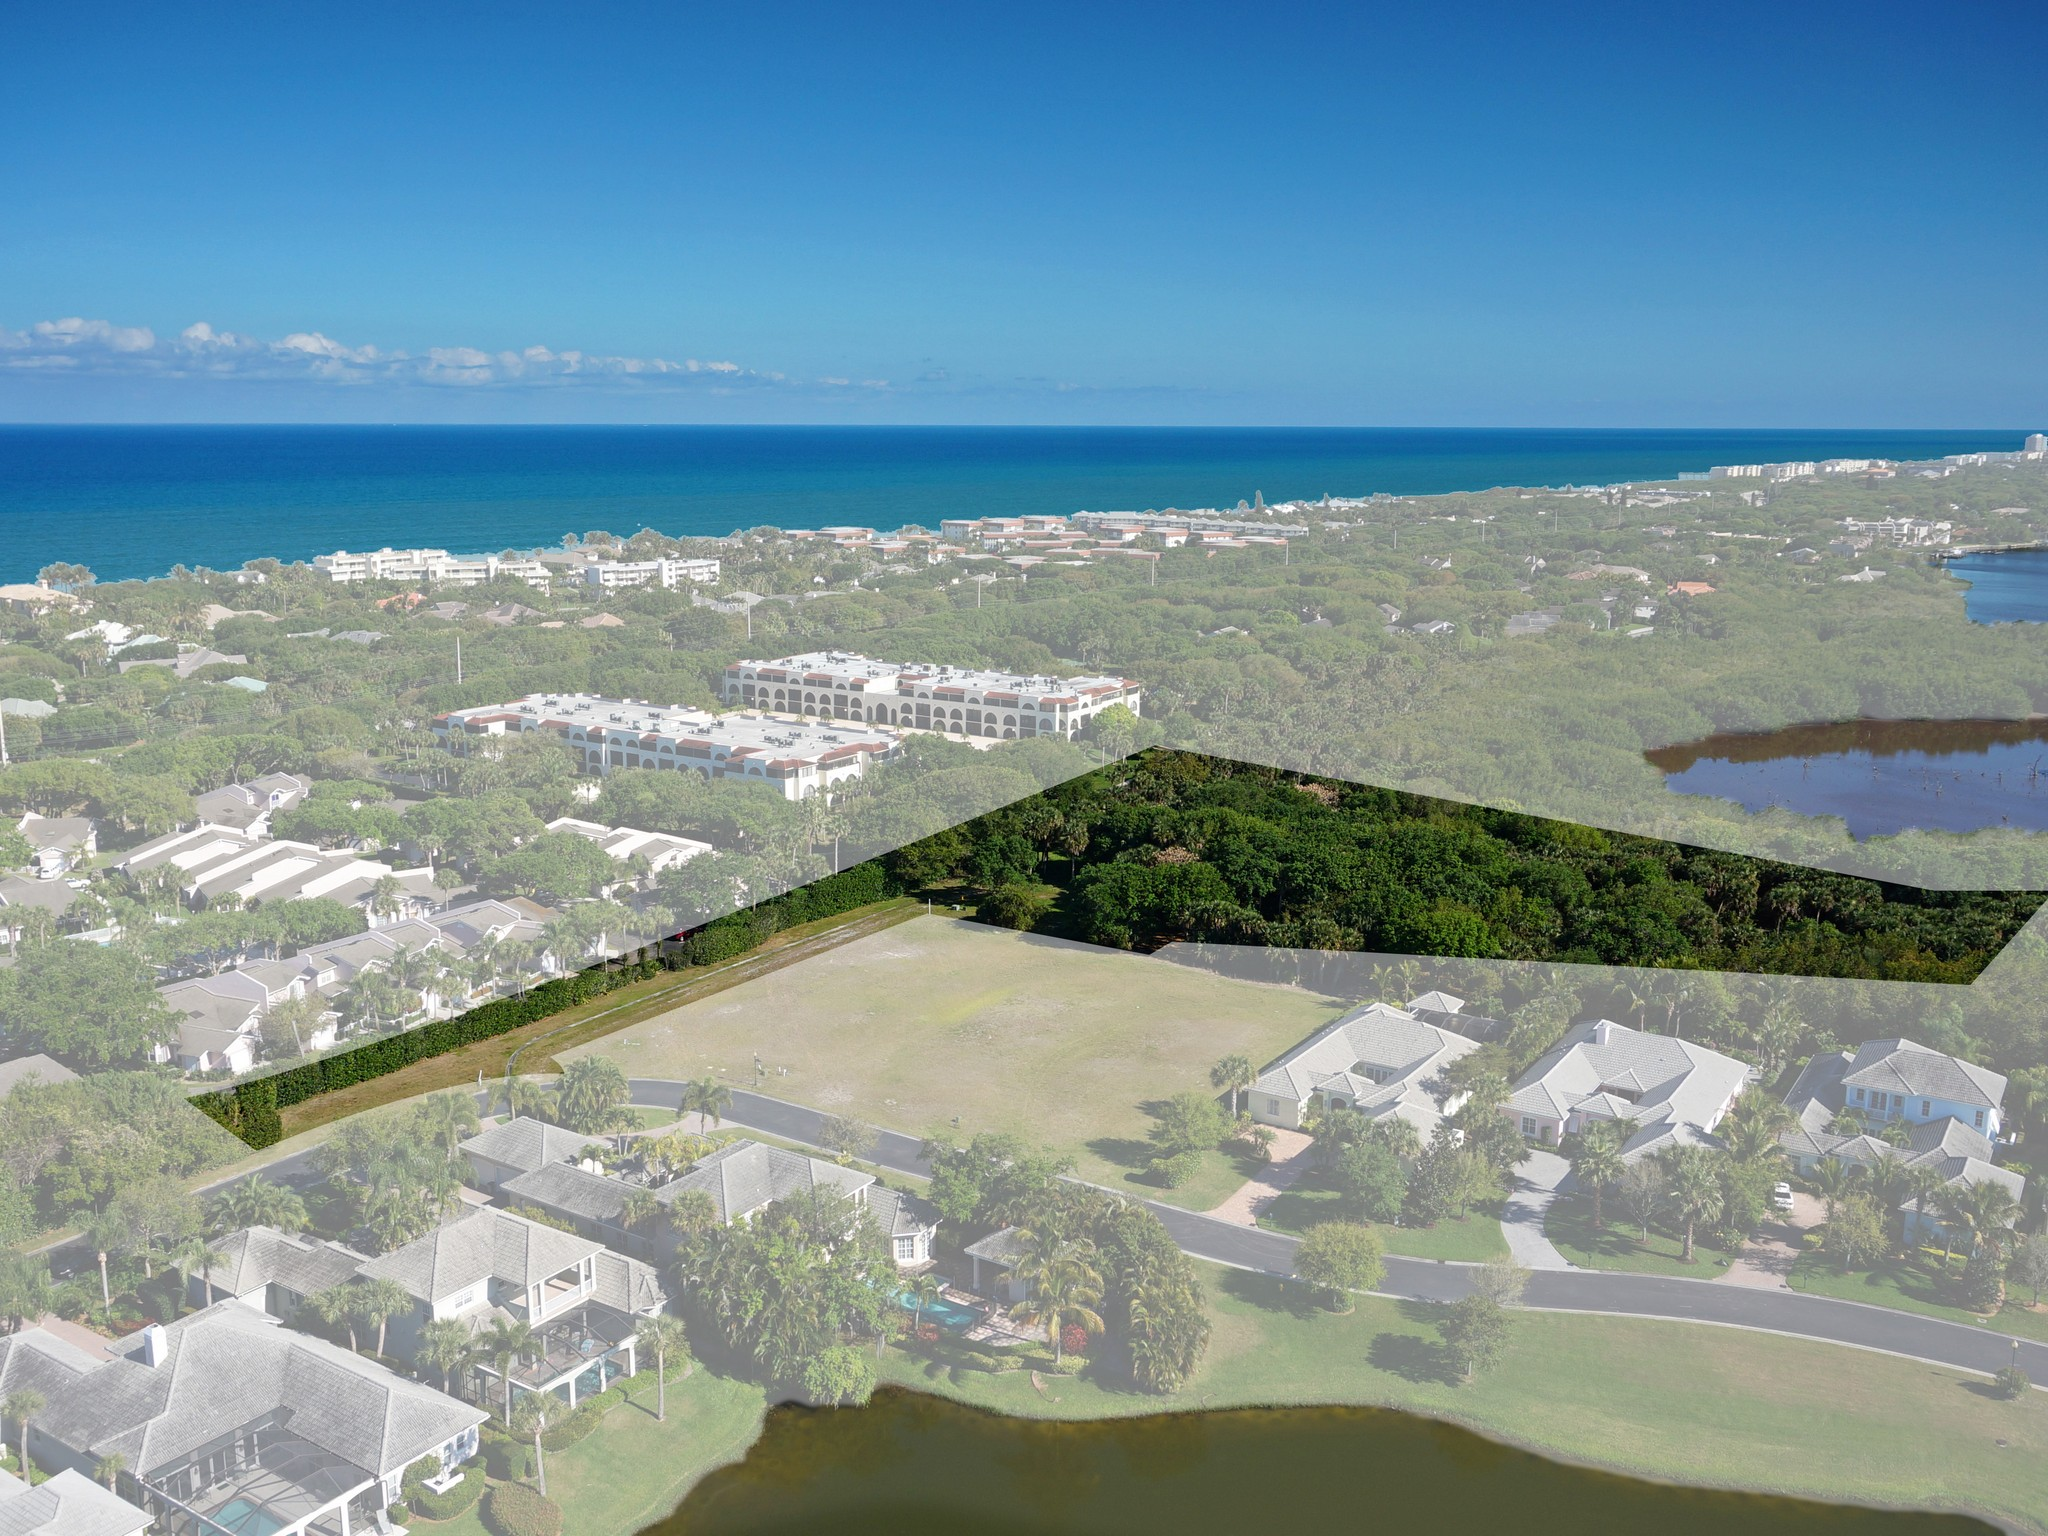 Terreno por un Venta en 2.3 Acre Homesite 240 Lakeview Way Vero Beach, Florida 32963 Estados Unidos